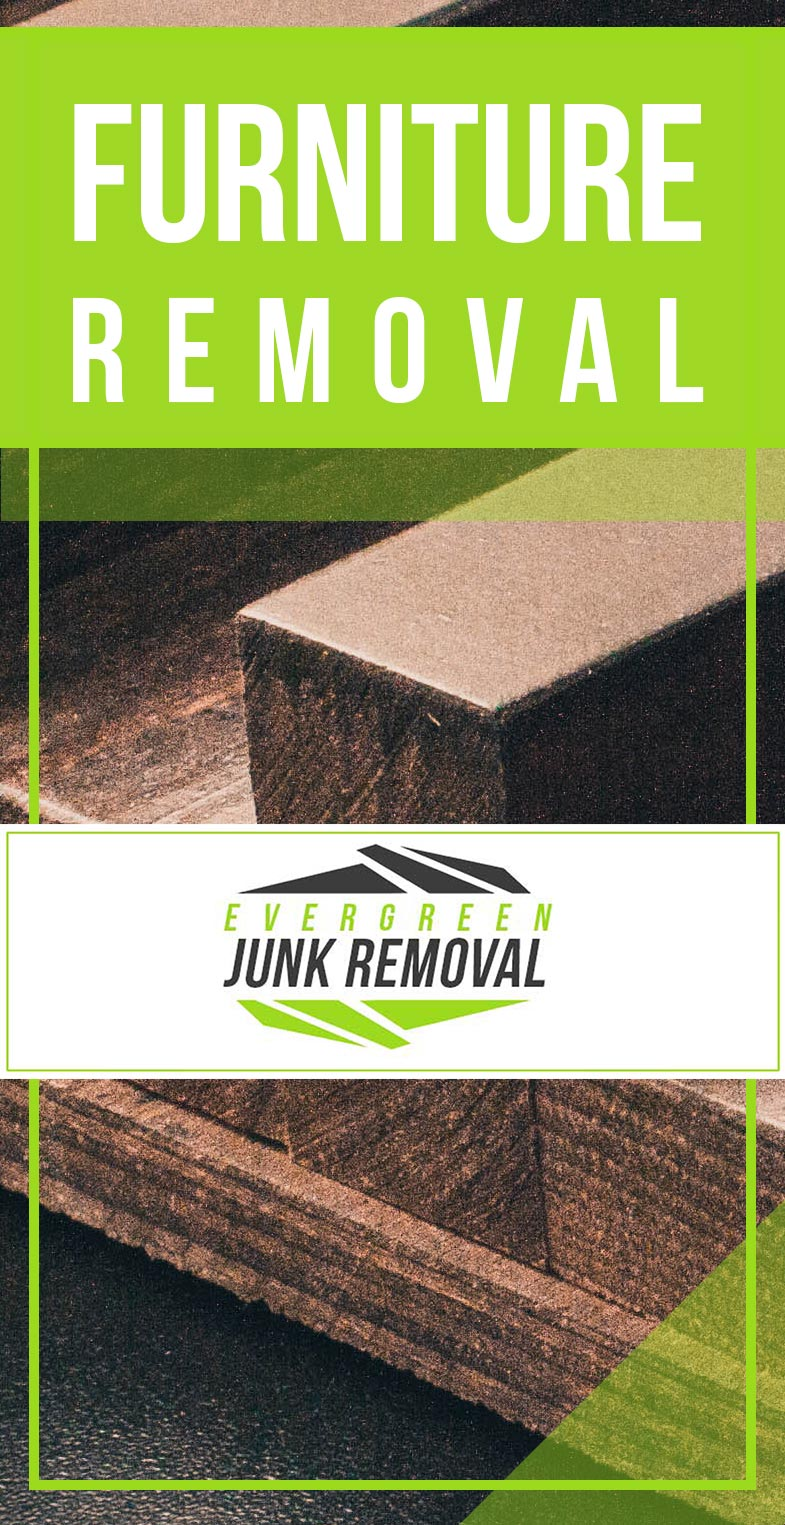 Cleburne Furniture Removal